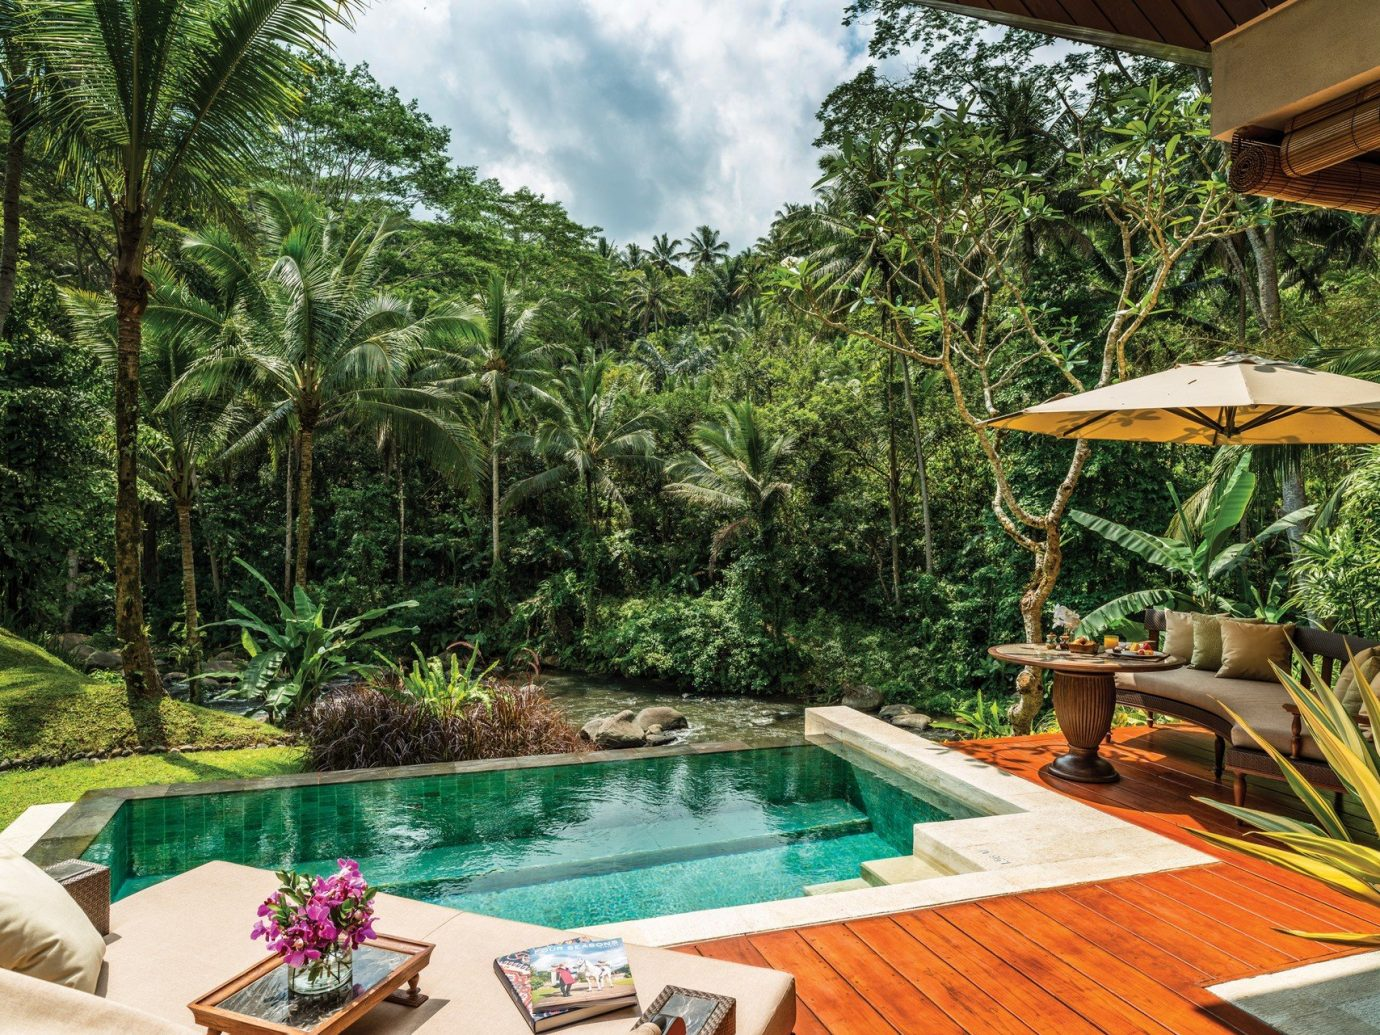 calm Elegant Greenery Hotels isolation lounge chairs Luxury outdoor lounge outdoor pool palm trees Patio Pool private pool regal remote Rustic serene sophisticated Terrace Trip Ideas Tropical tree table outdoor swimming pool property Resort backyard estate Villa Jungle eco hotel Garden